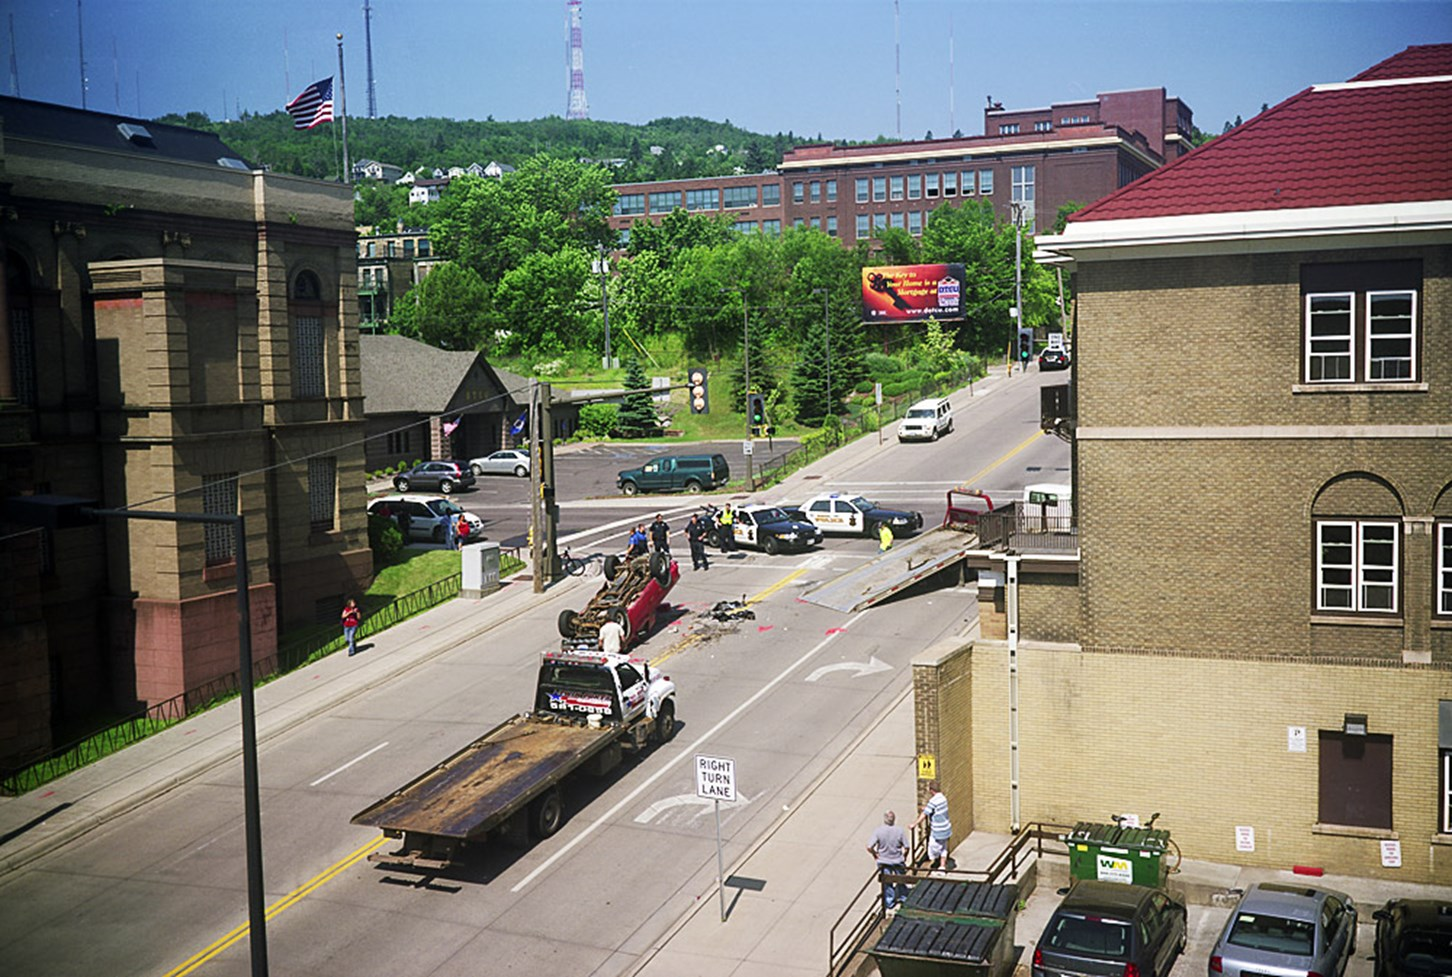 A Truck Rolled Over, Duluth, Minnesota, July 2011